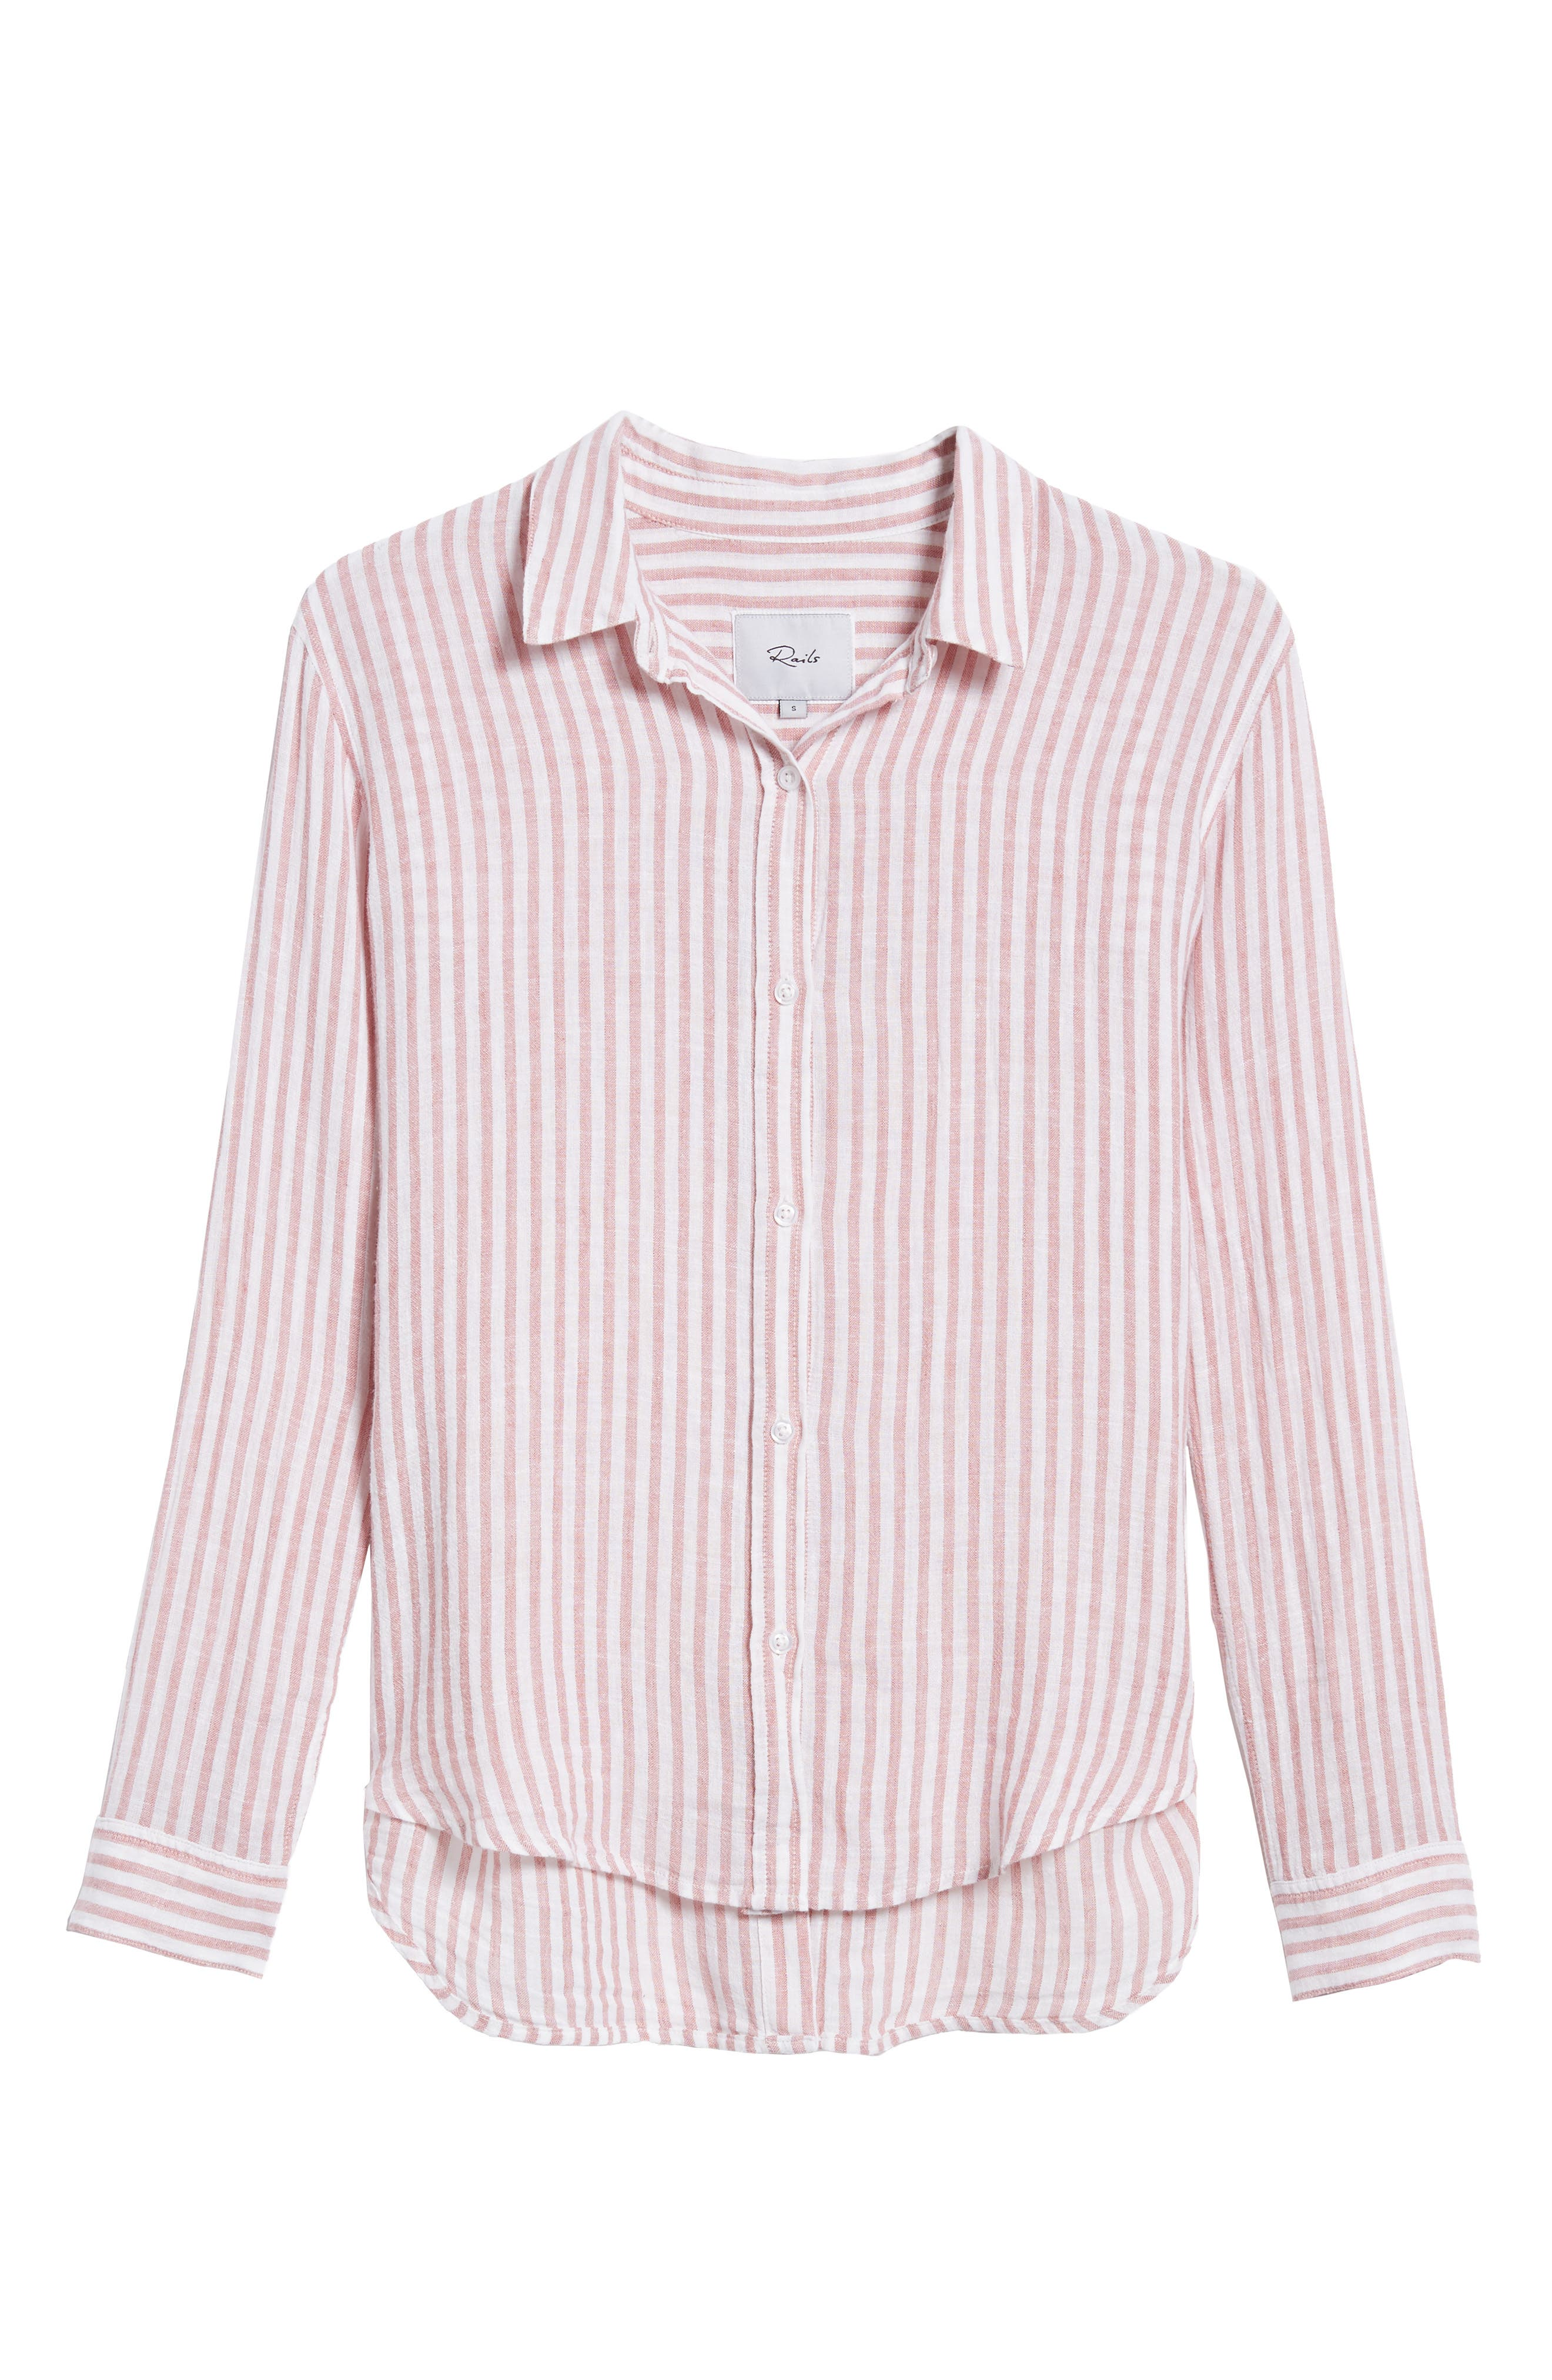 Sydney Stripe Linen Blend Shirt,                             Alternate thumbnail 6, color,                             Florence Stripe